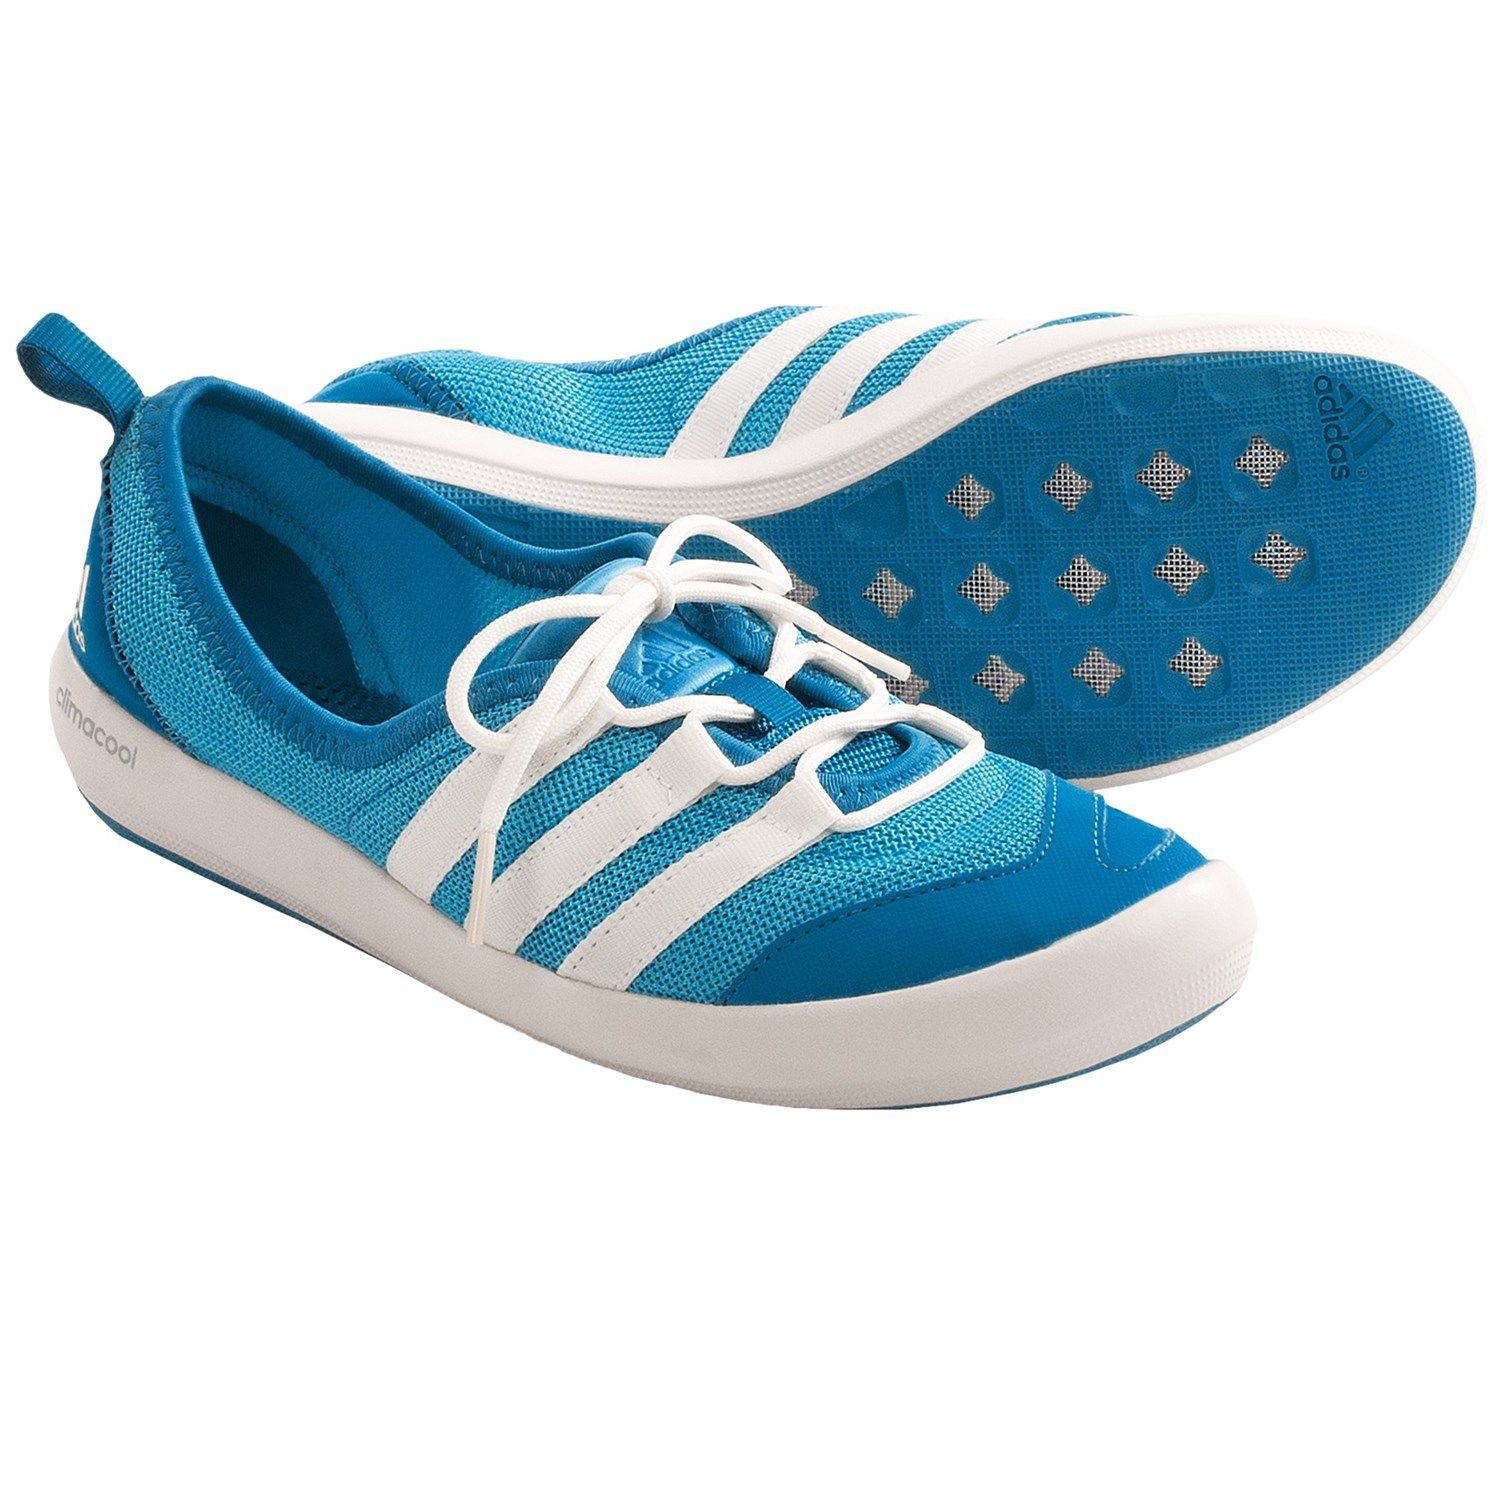 adidas outdoor ClimaCool® Boat Sleek Water Shoes (For Women ...